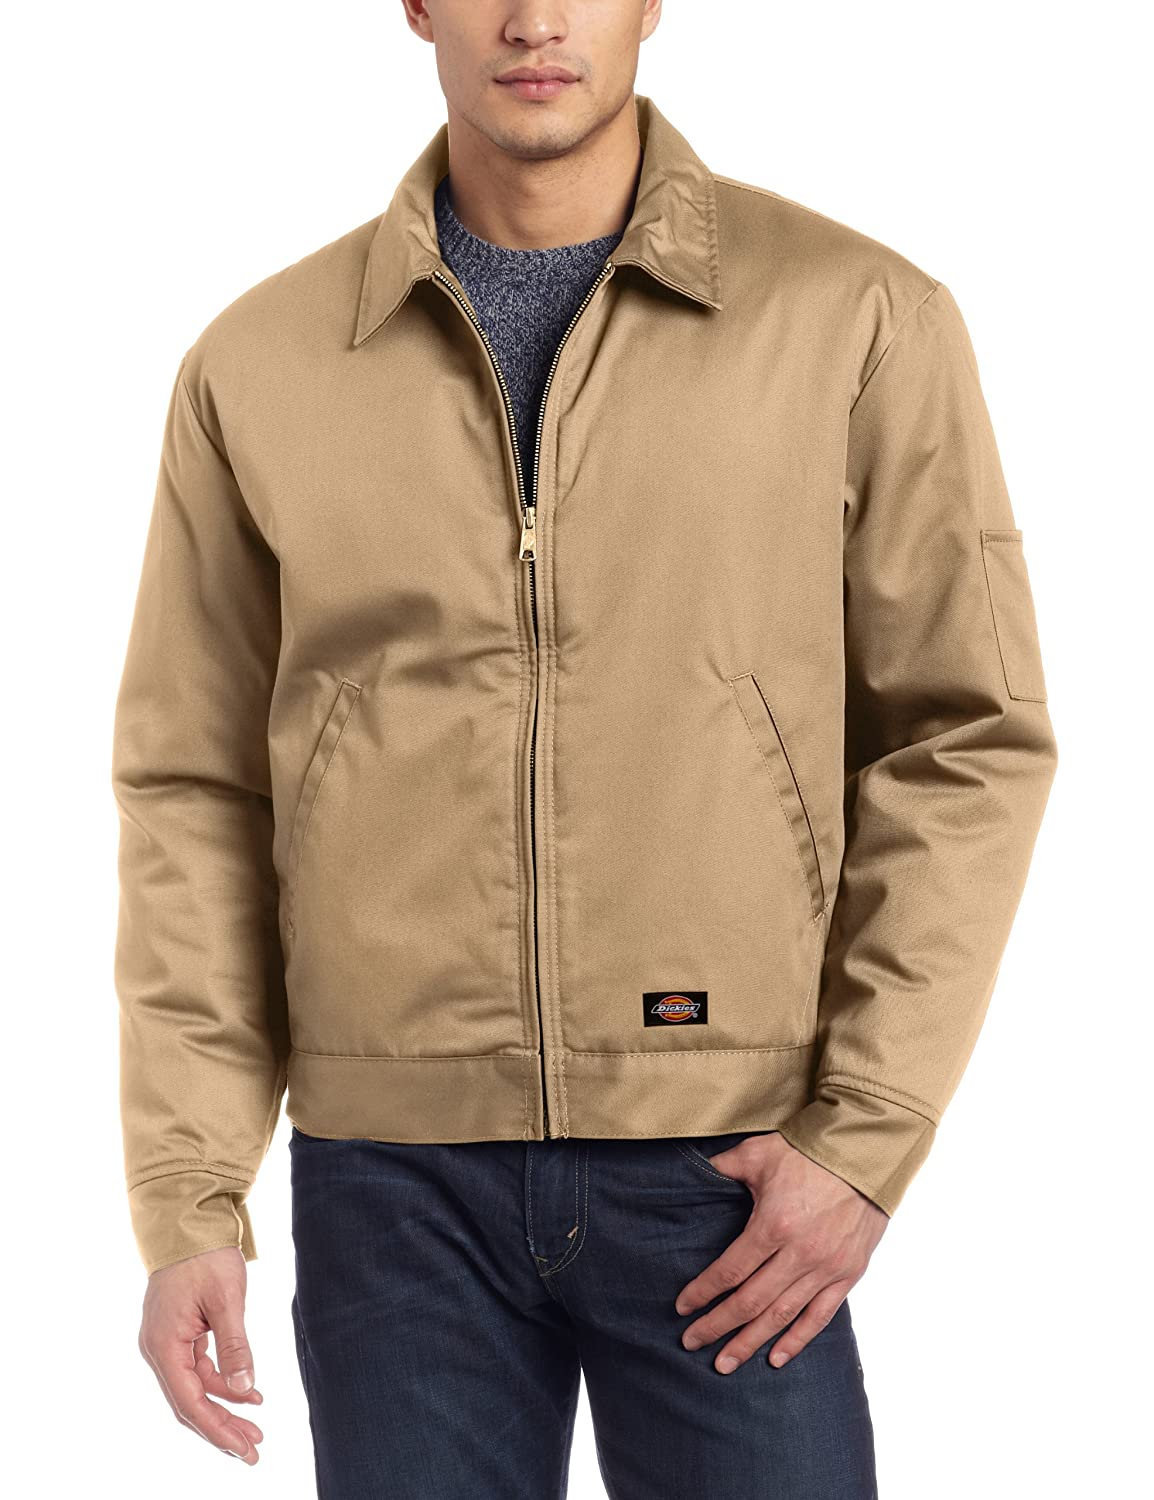 Dickies Men's Big-Tall Lined Eisenhower Jacket Dickies Men' s Sportswear TJ15